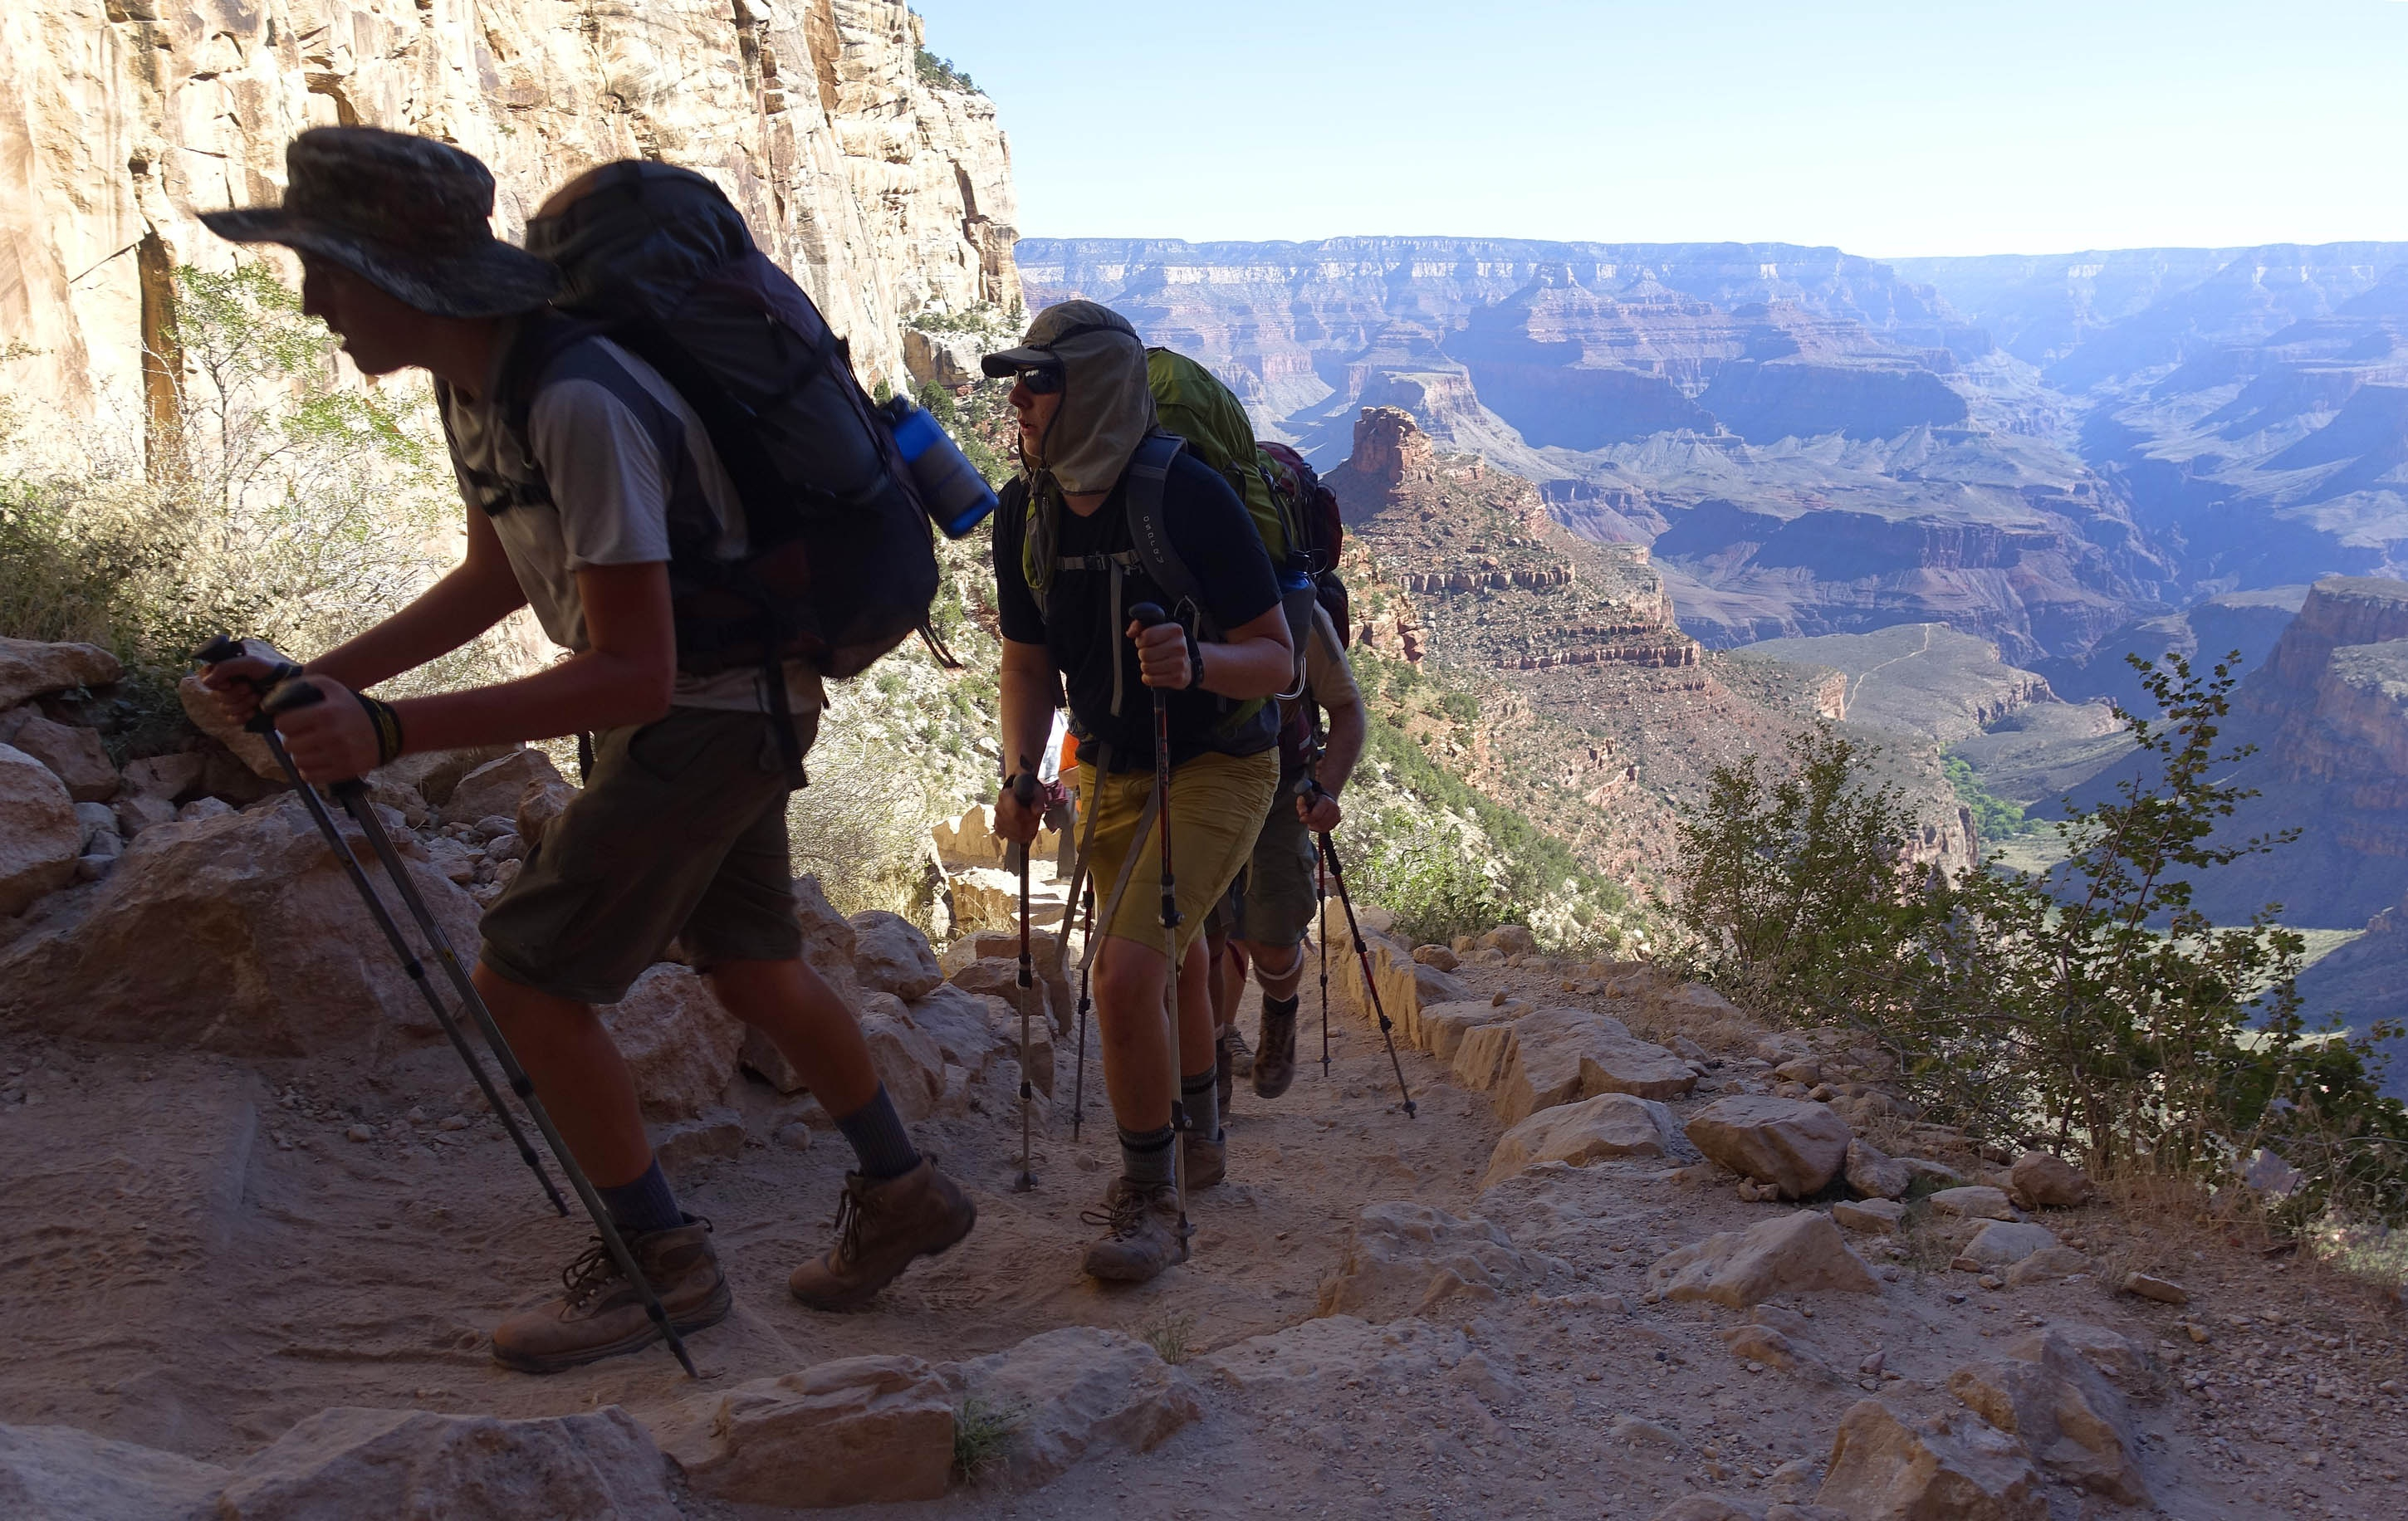 FILE - In this July 27, 2015, file photo, a long line of hikers head out of the Grand Canyon along the Bright Angel Trail at Grand Canyon National Park, Ariz. The National Park Service is floating a proposal to increase entrance fees at 17 of its most popular sites next year. (AP Photo/Ross D. Franklin, File)